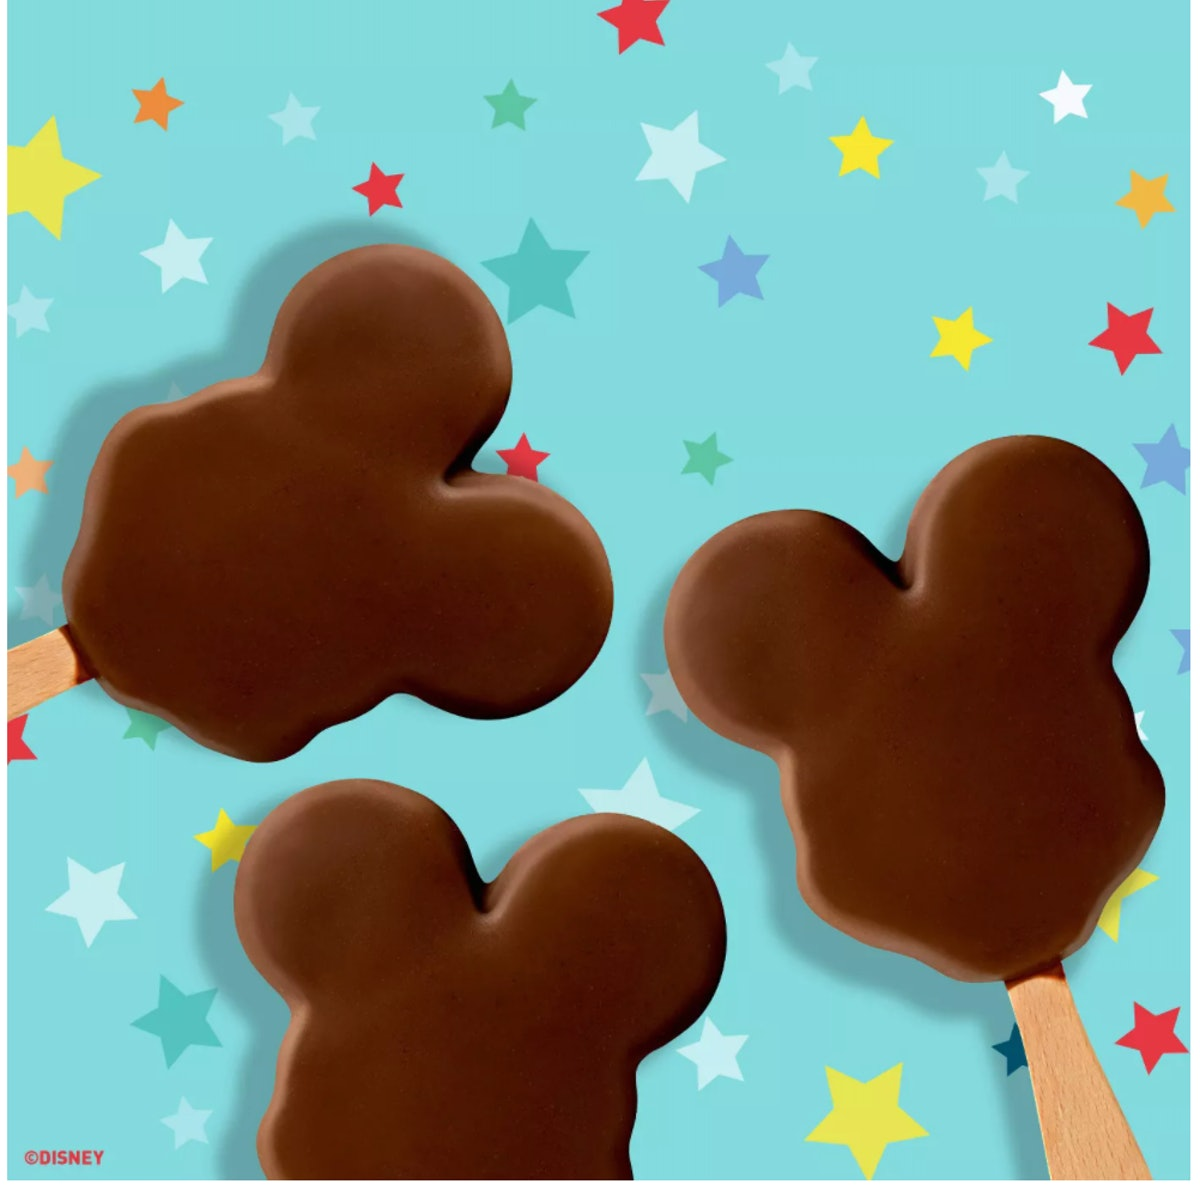 You can buy Disney-themed snacks online like these Mickey-shaped ice cream bars.